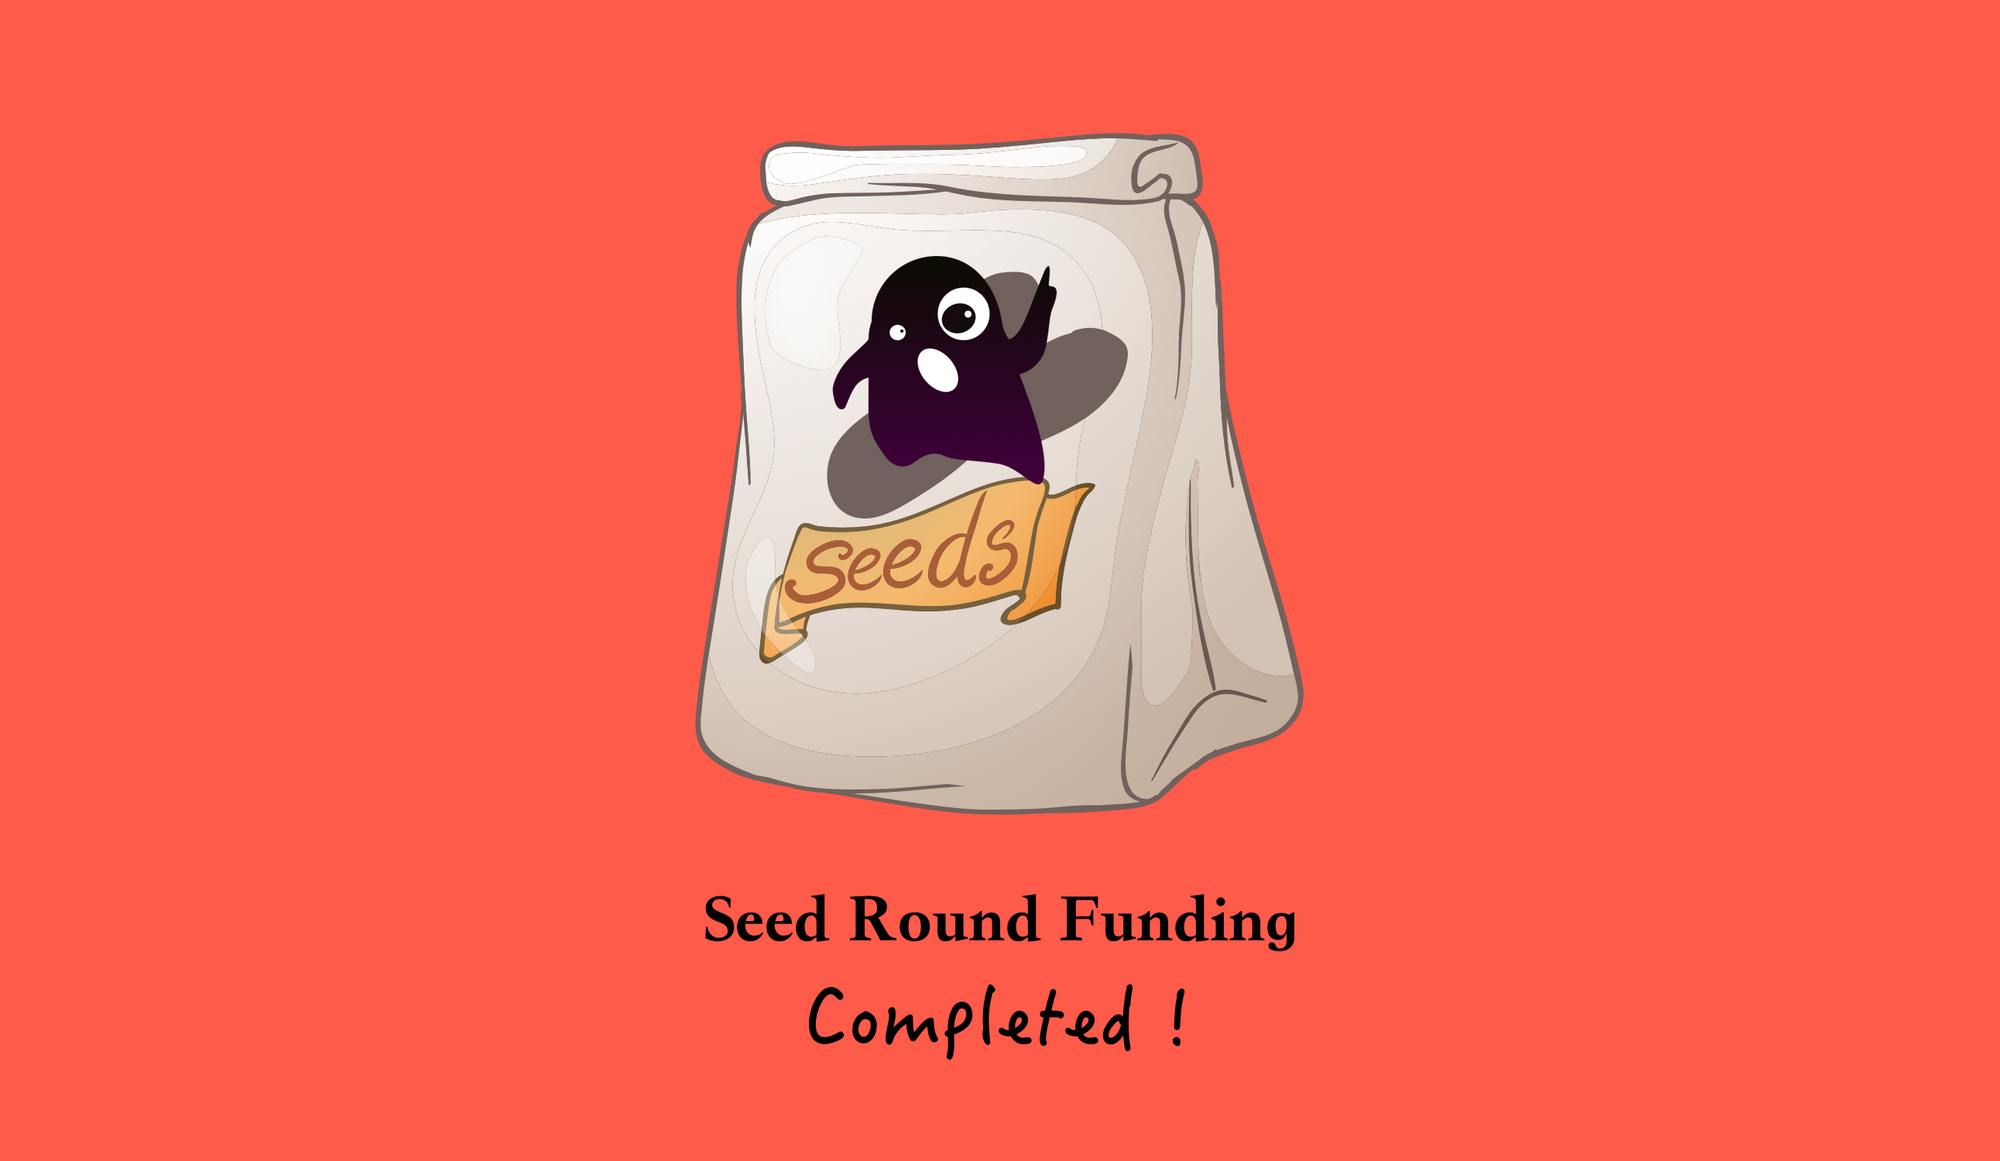 DAOSquare Has Completed Seed Round Funding